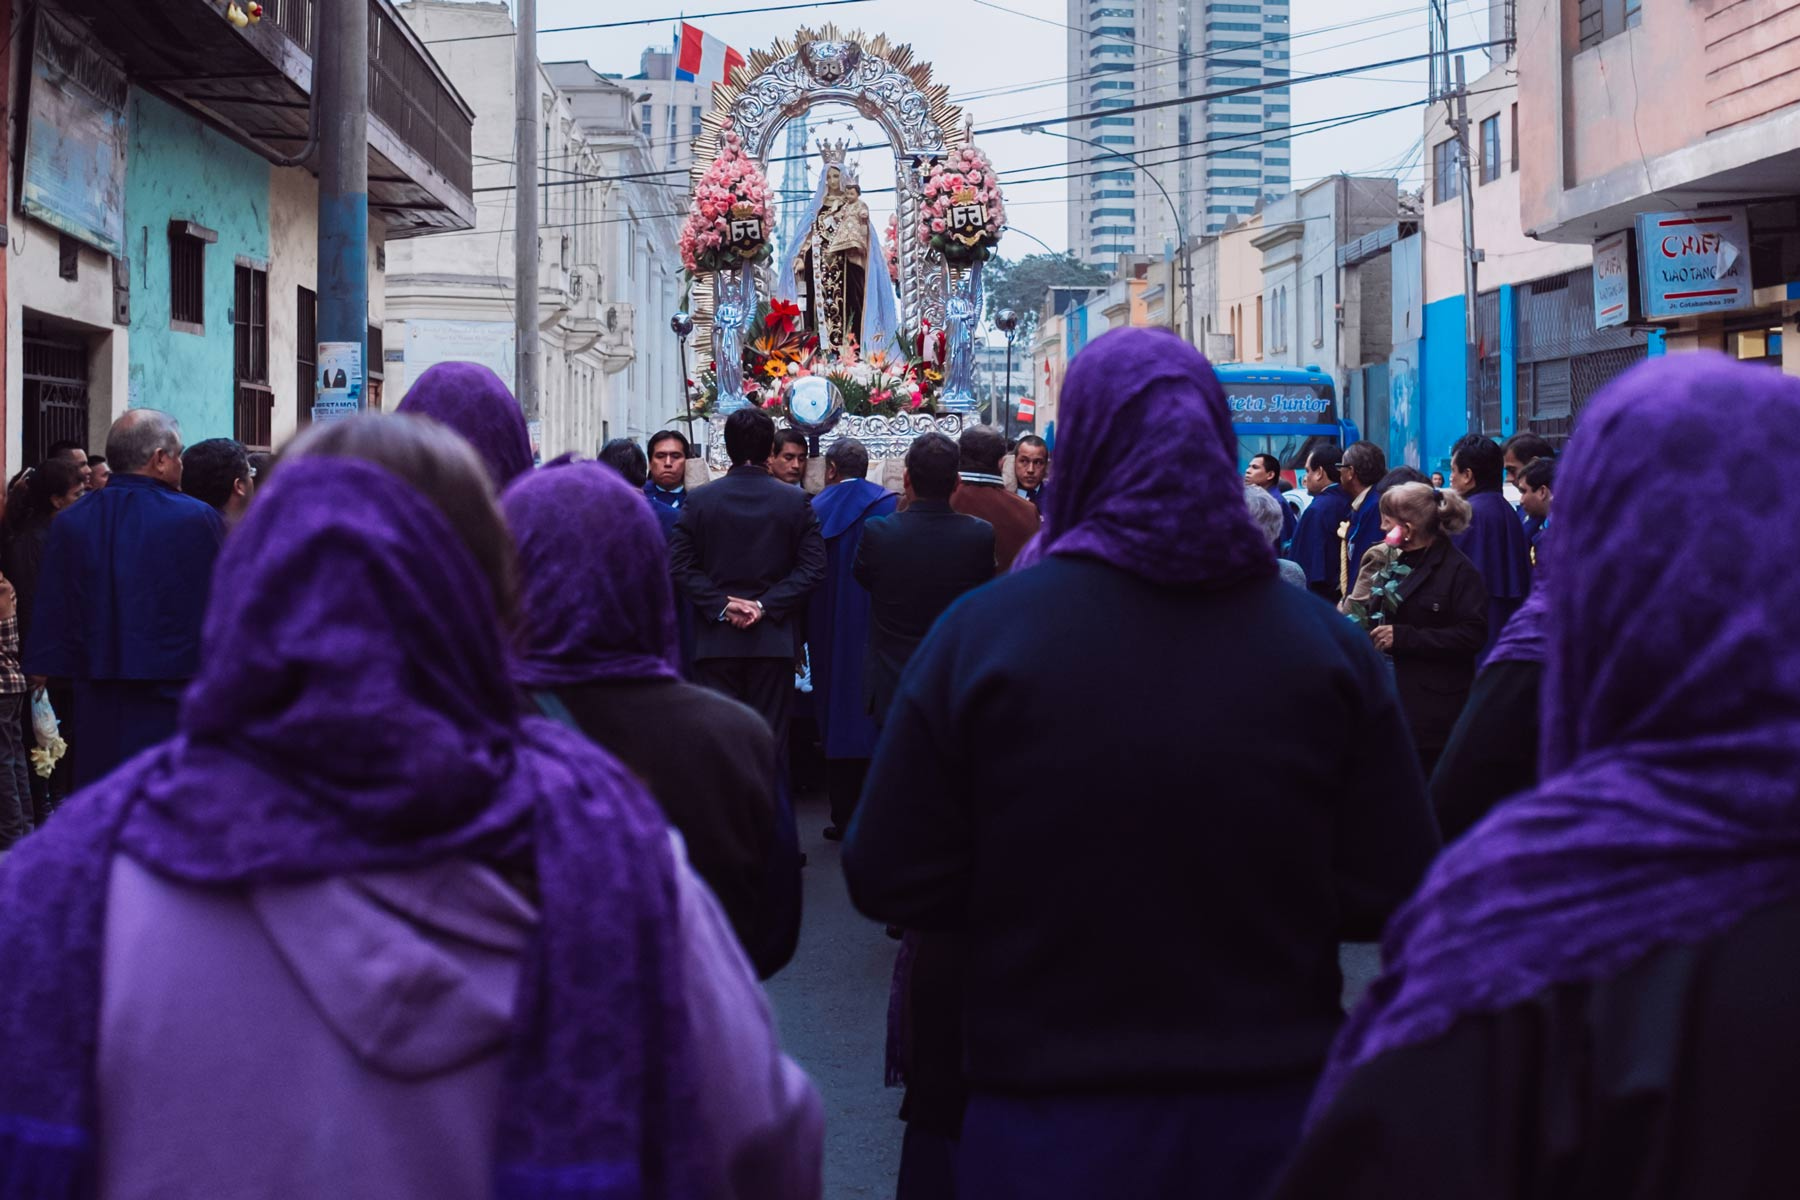 The procession of the Virgin Mary takes place in a small neighborhood in Lima.